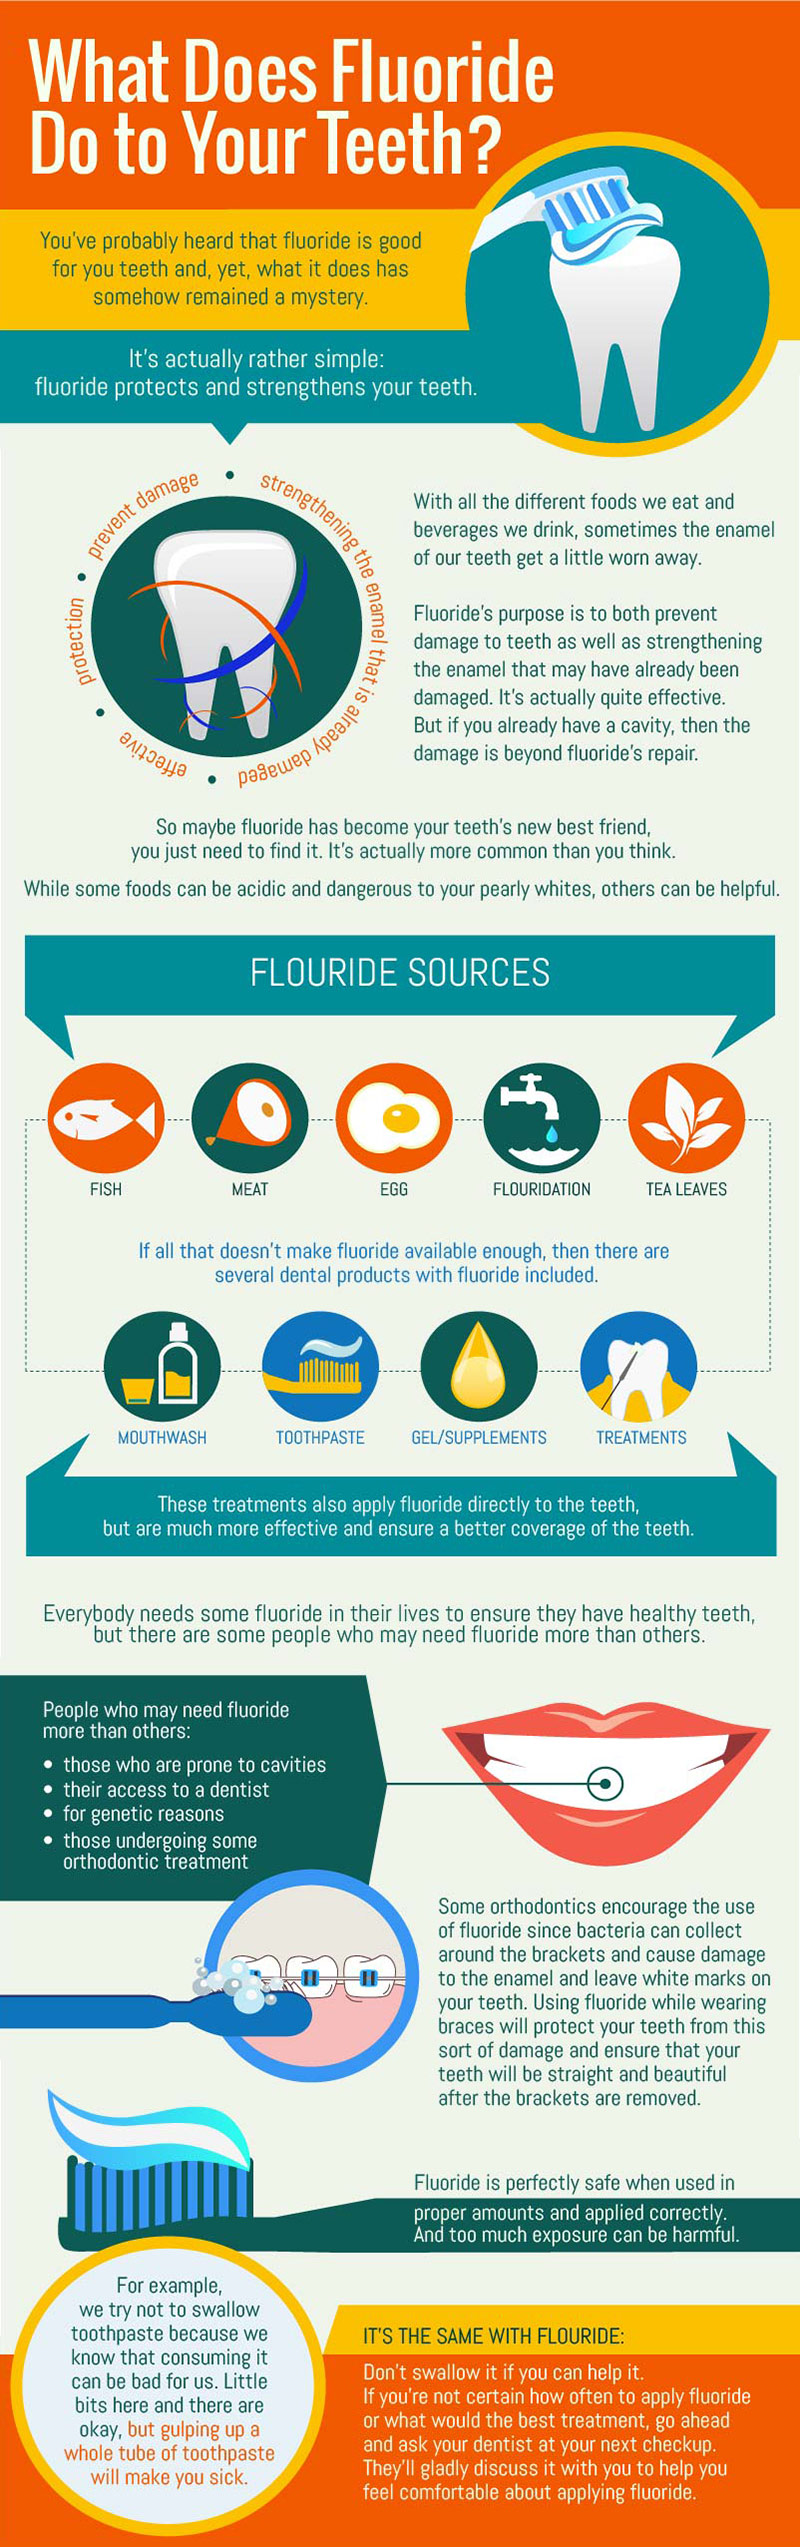 What-Does-Fluoride-Do-to-Your-Teeth